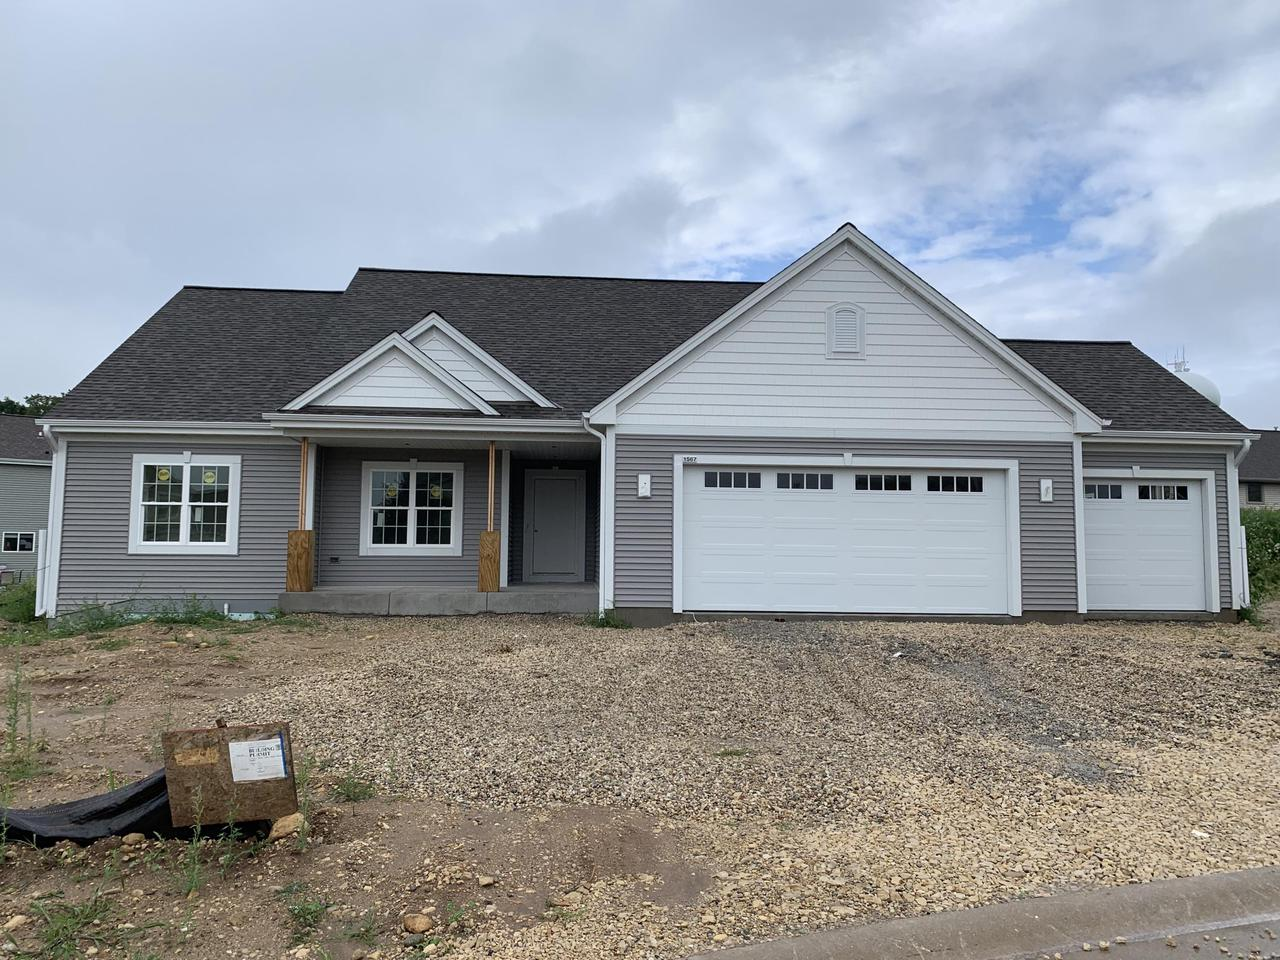 NEW CONSTRUCTION by Stepping Stone Homes. $2500 buyer closing cost credit OR credit towards a patio/deck for an accepted offer by 10/31! The Emery in Autumn Ridge will welcome you w/it's open concept. Superior quality w/2x6 exterior framing including amazing upgrades like soft close dovetail cabinetry, quartz/marble counter tops, double sinks in the bathrooms, upgraded flooring, 8 foot garage doors & more! This home comes equipped with Smart Home Technology, including integrated lighting, door locks, ecobee smart thermostat, video doorbell, Lift Master garage door, all of which you can control from your mobile device! Make sure your garage door is closed & the lights are off when you're away. Concrete driveway and lawn are included also!  THREE car garage and egress window.